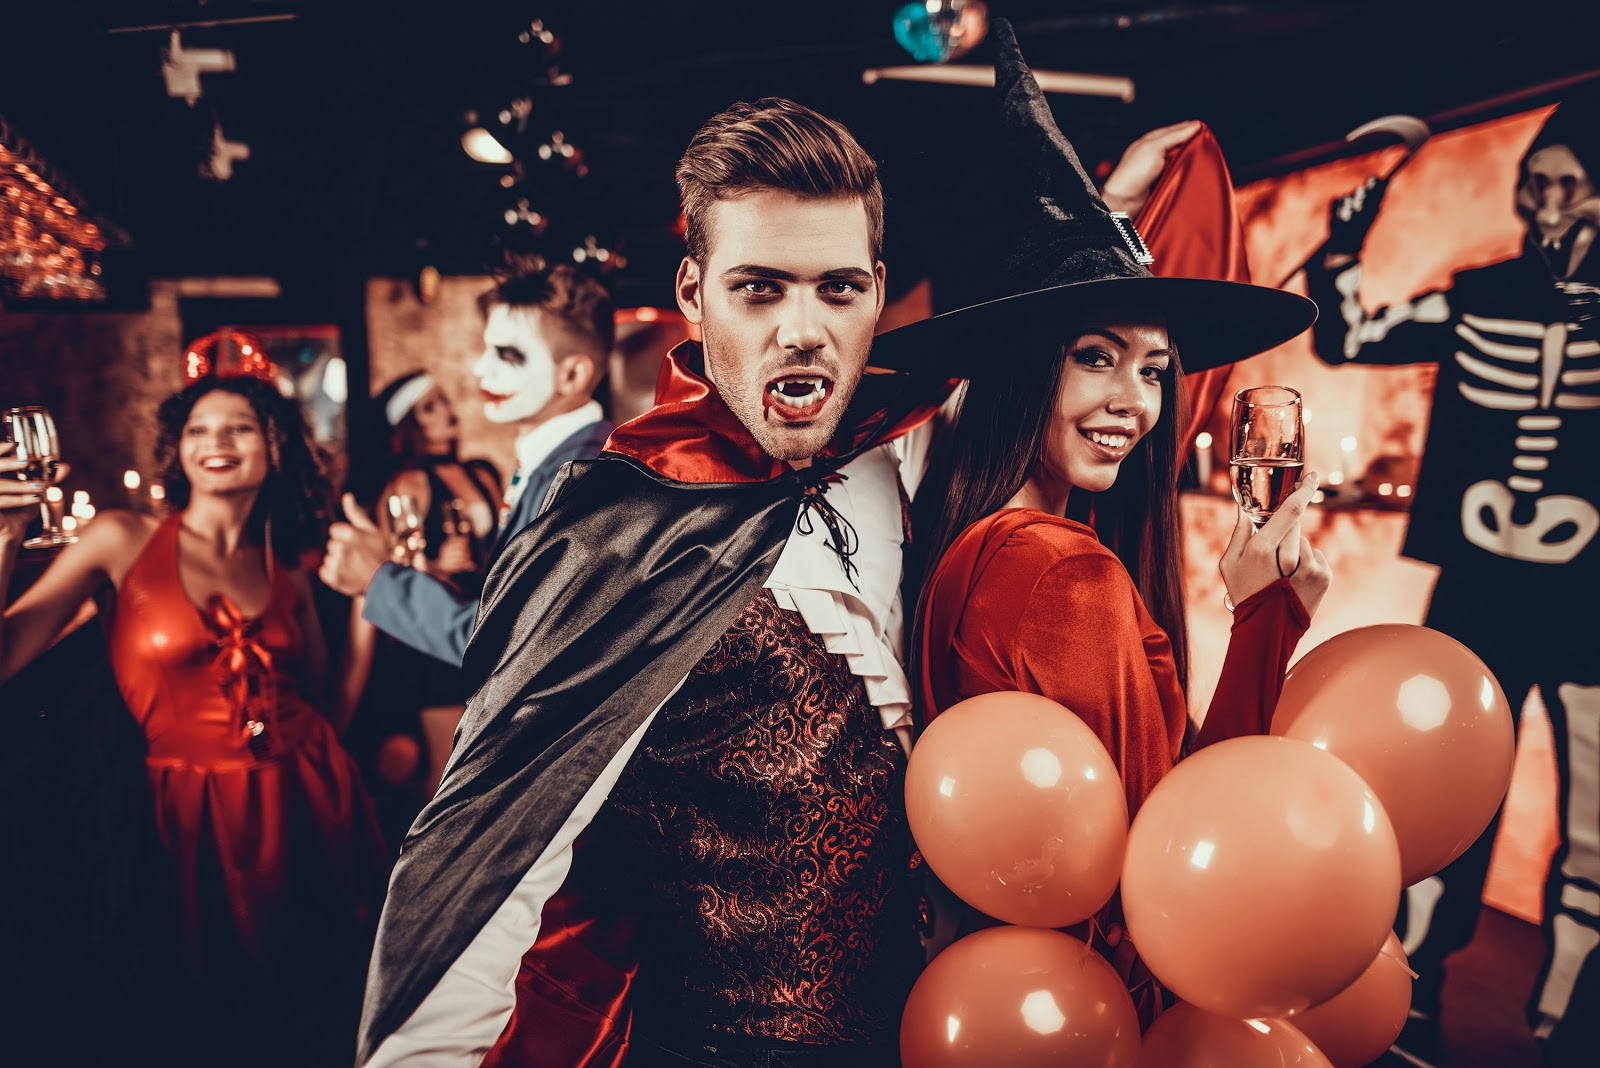 Adults dressed up as vampires, witches, and devils for a halloween party